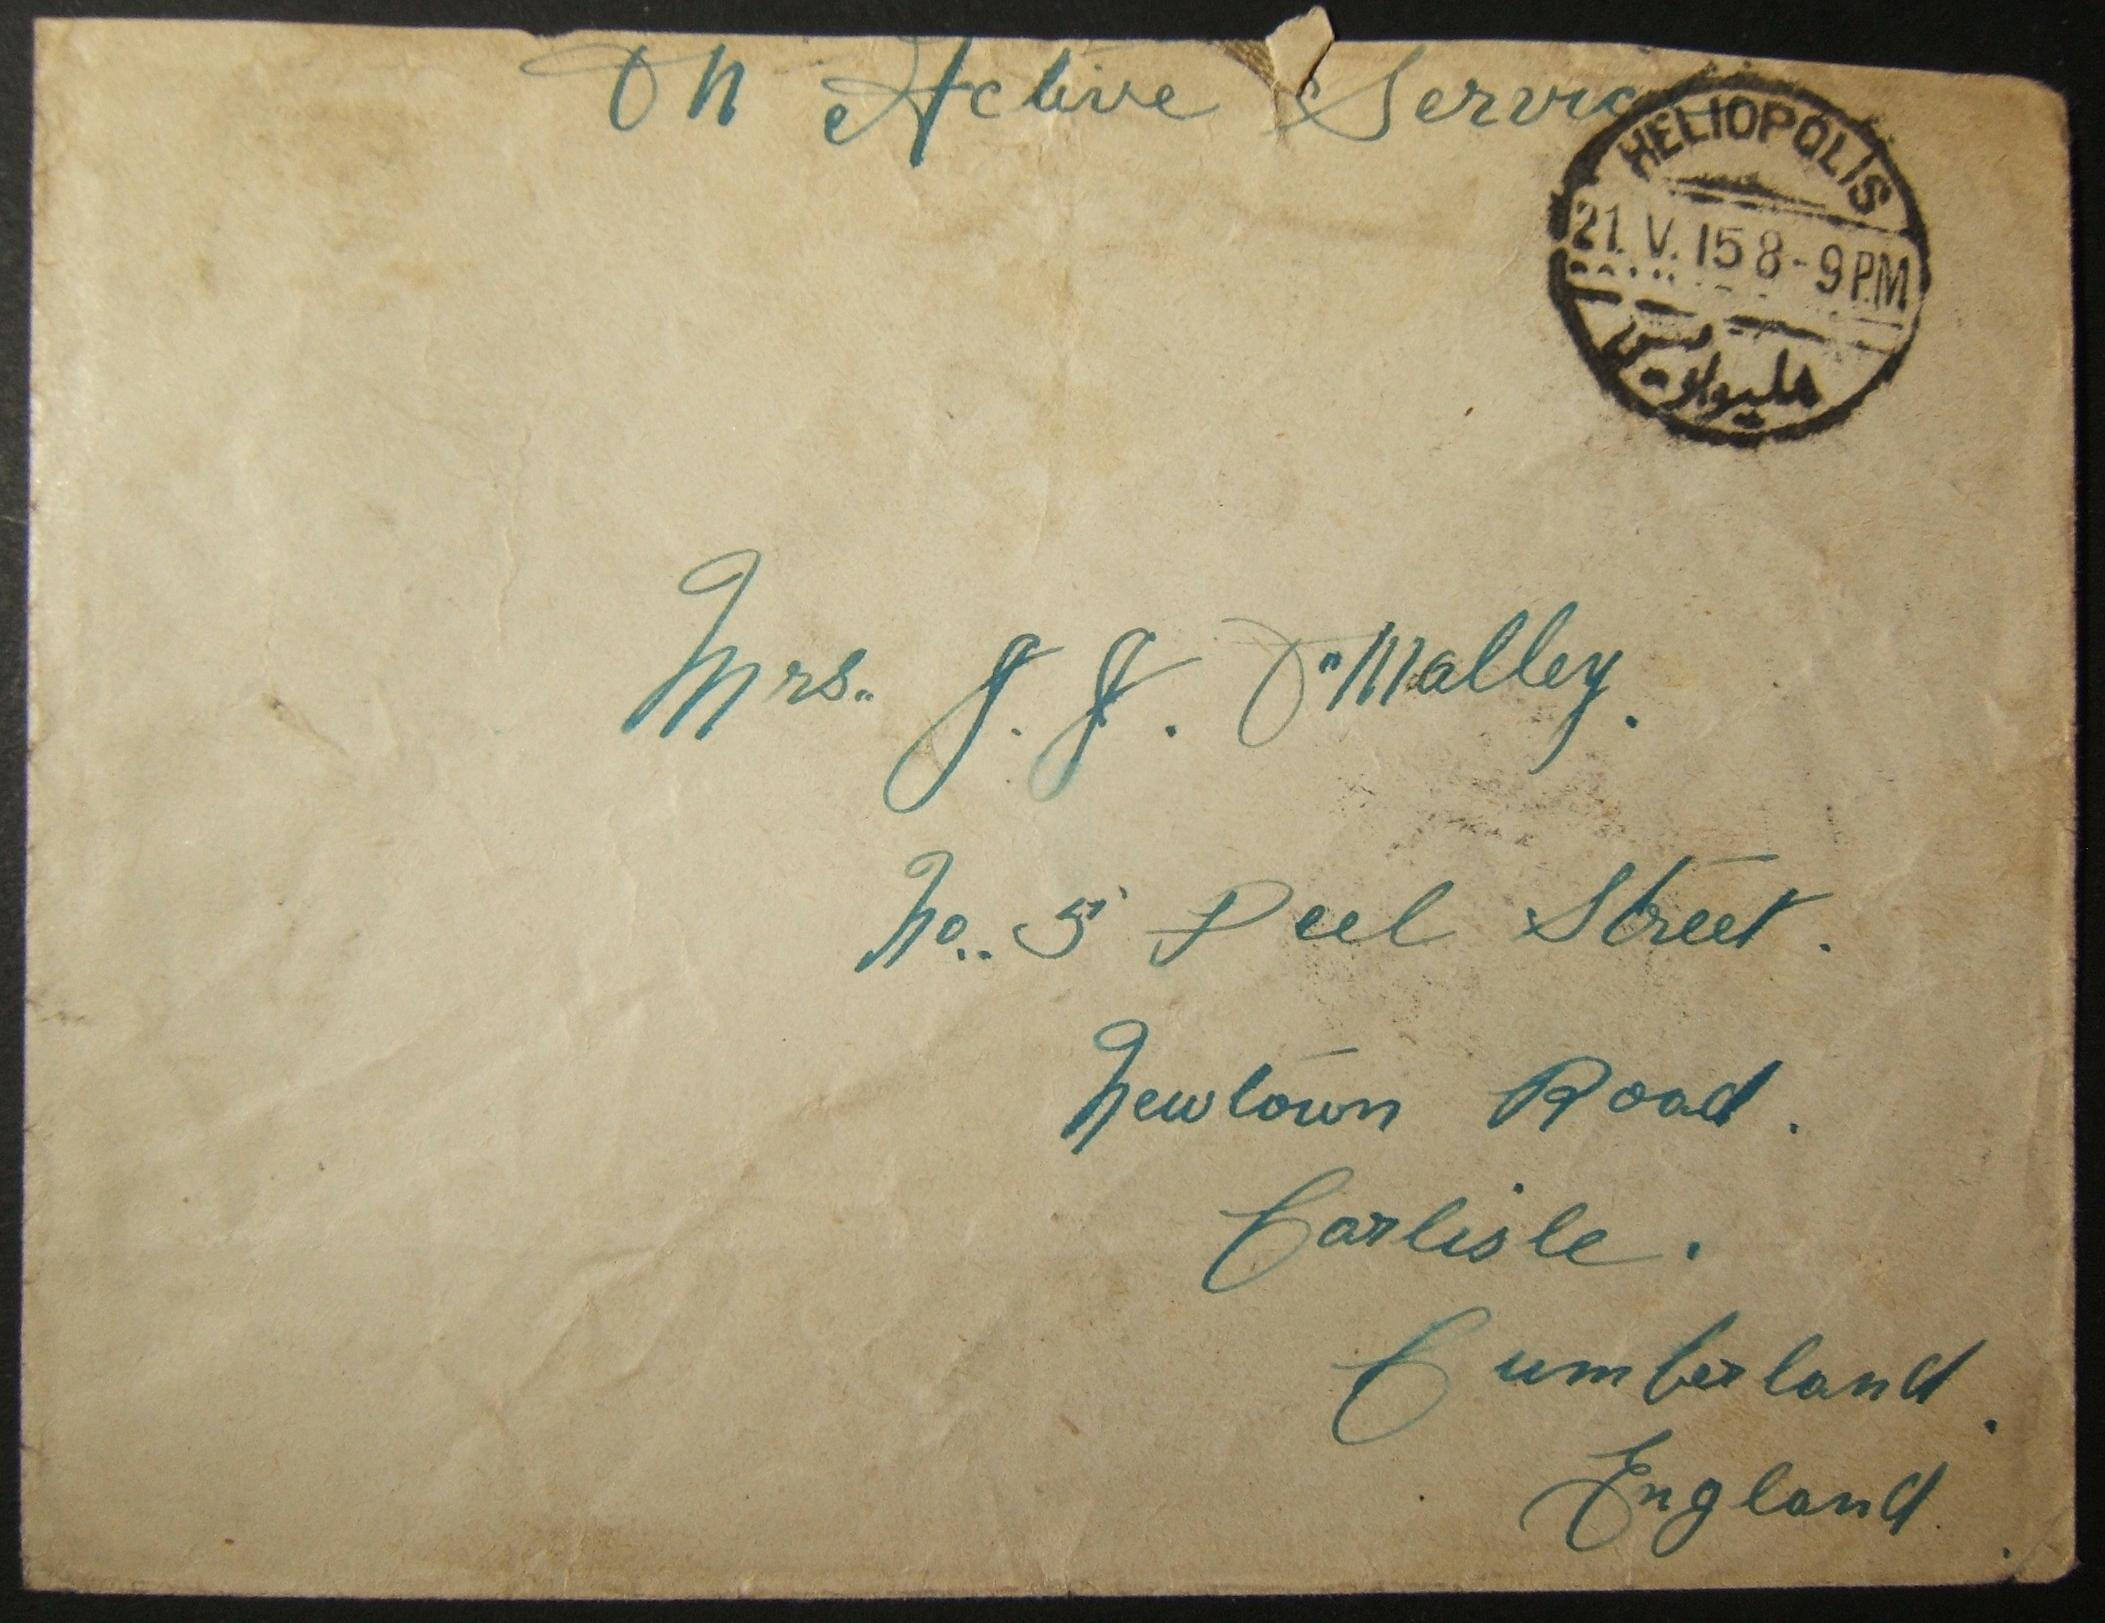 5/1915 WWI unfranked British military mail to UK via Egyptian post; early dated postmark + date error